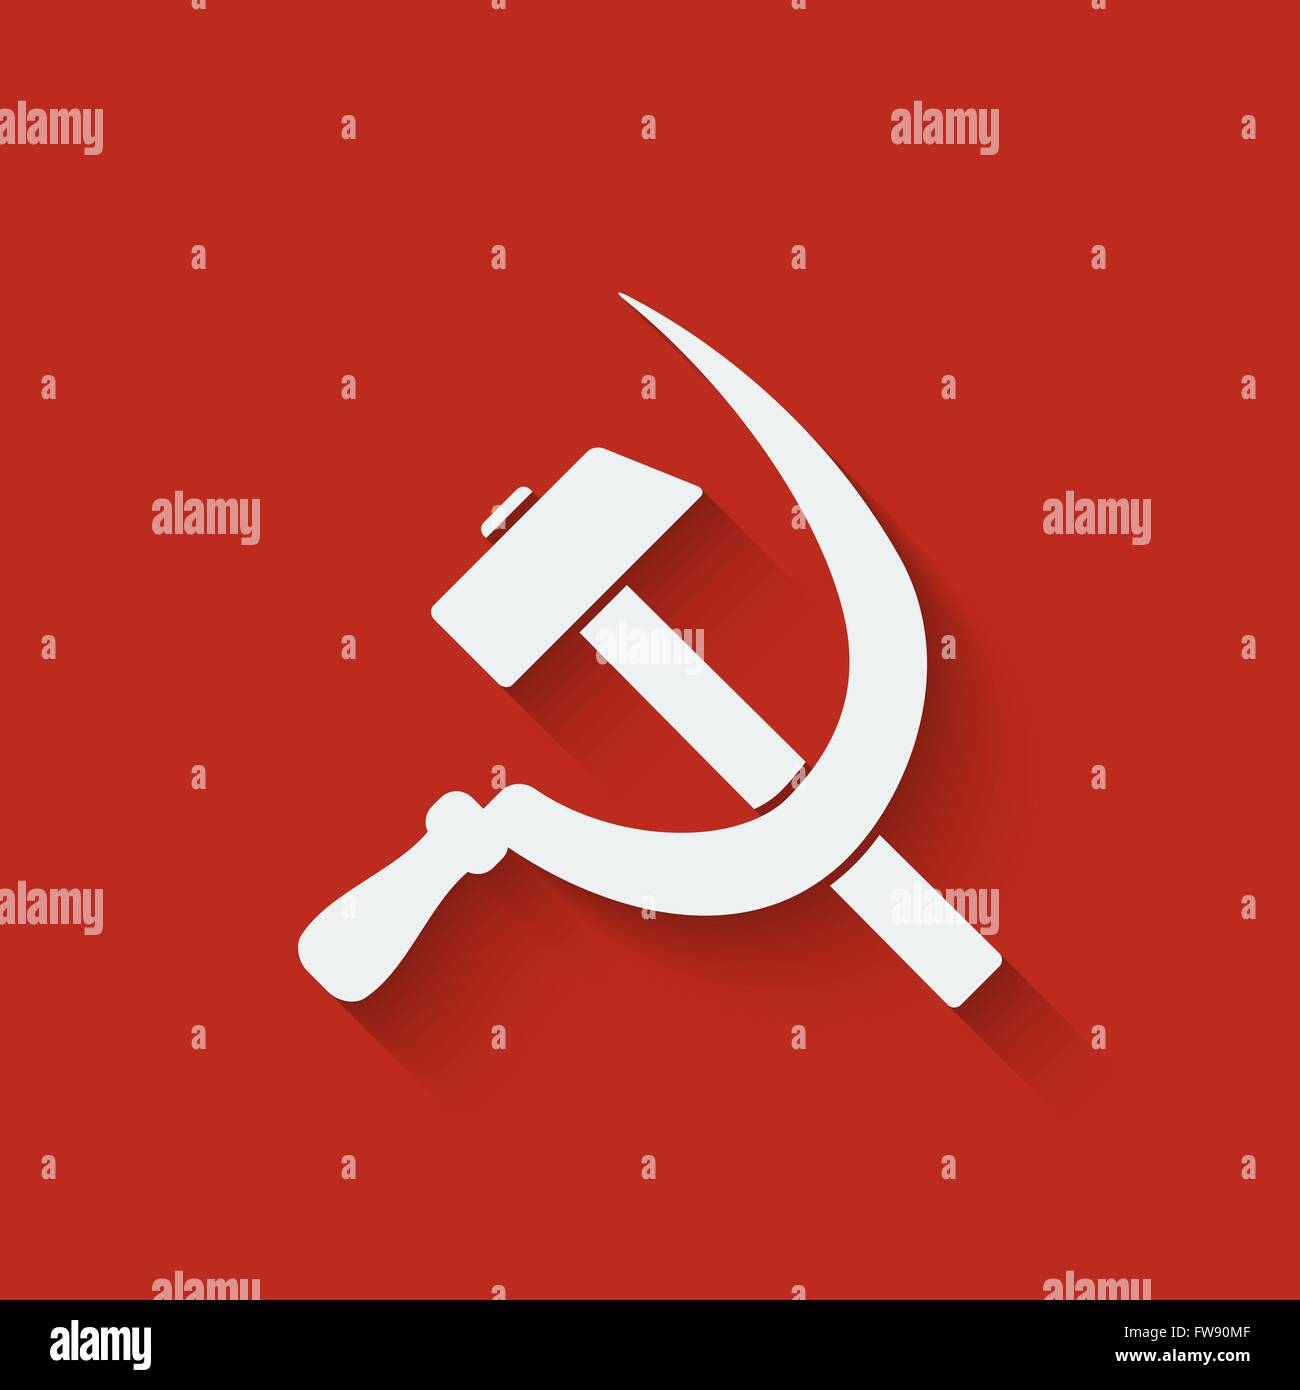 Hammer and sickle symbol red background vector illustration eps hammer and sickle symbol red background vector illustration eps 10 biocorpaavc Gallery